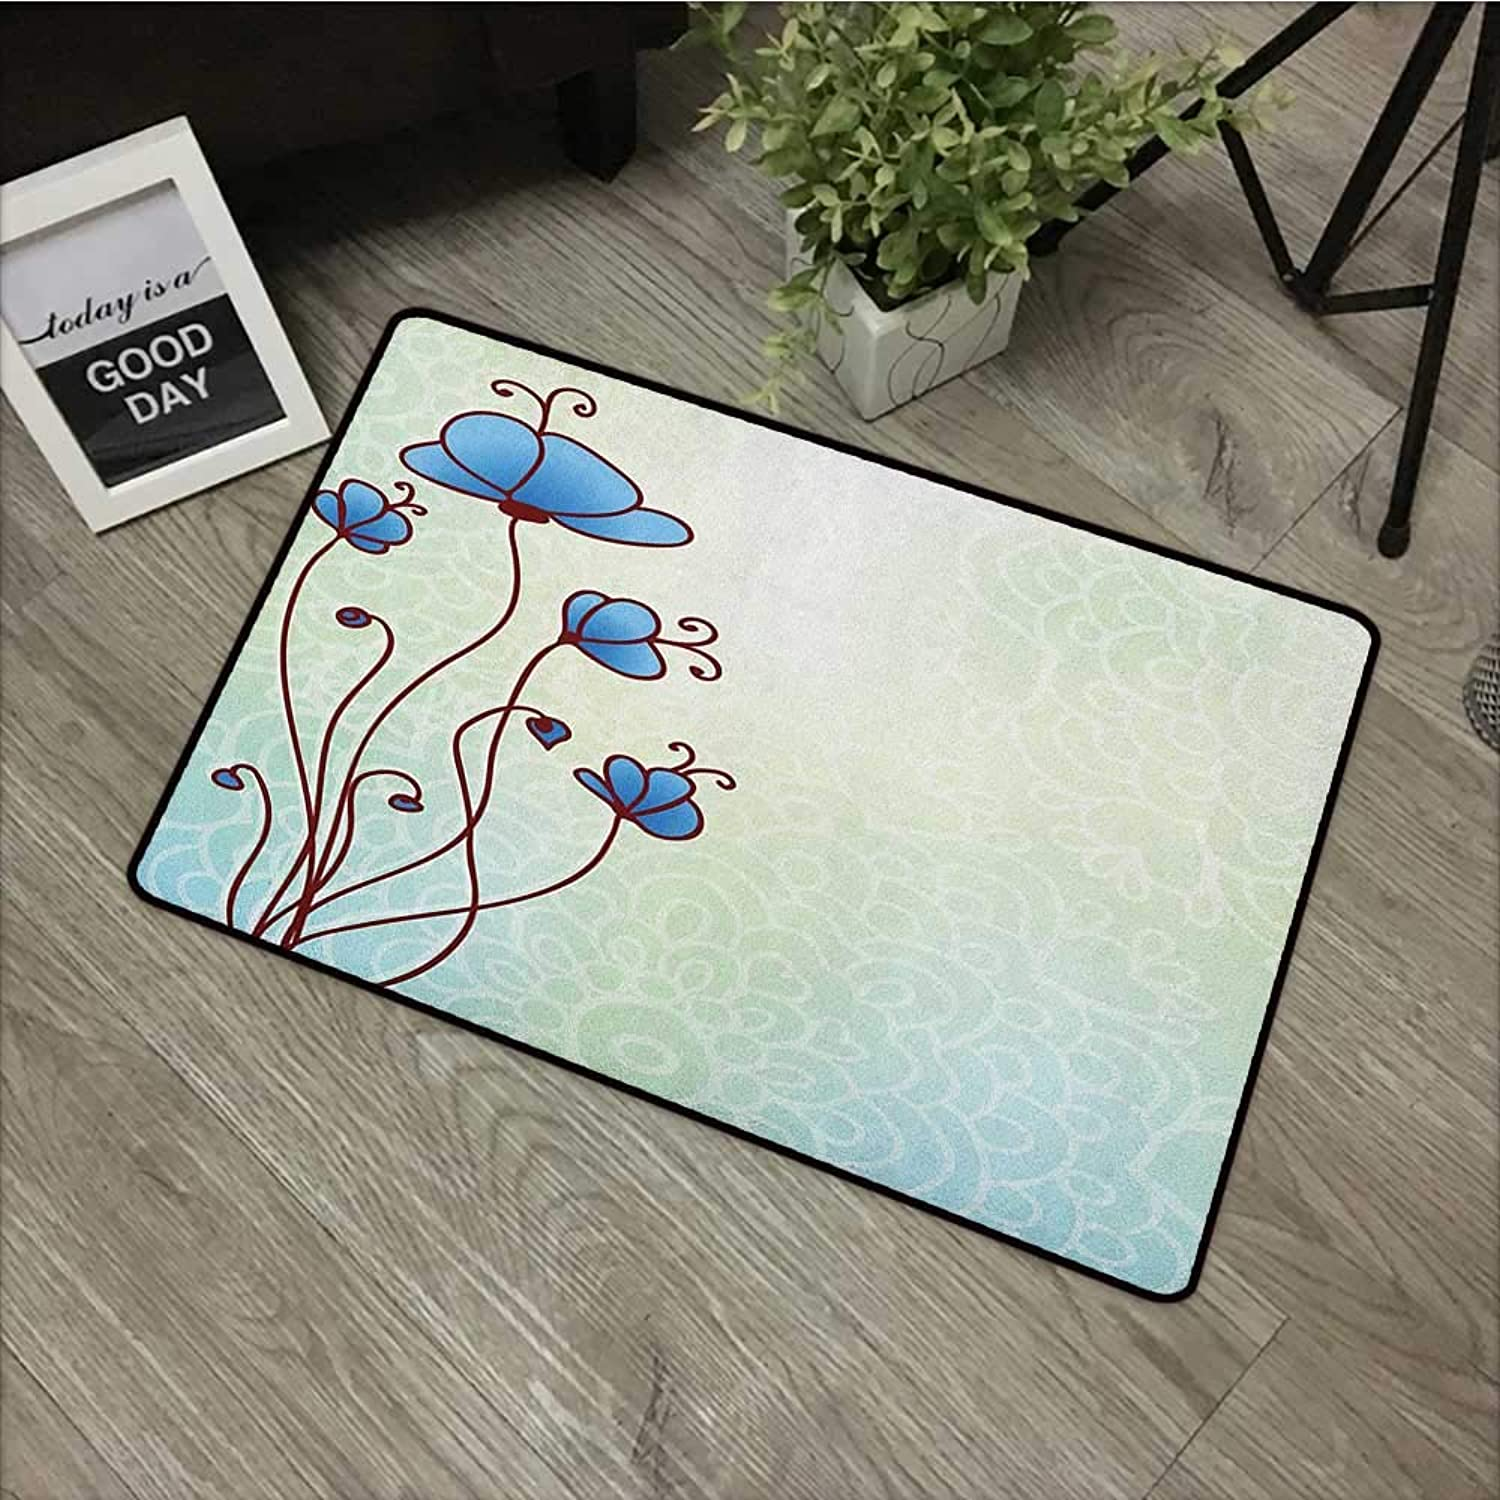 Restaurant mat W35 x L59 INCH Floral,Spring Petal Birthday Celebration Valentines Flourish Beauty Girlish Print, Pale and purple bluee Easy to Clean, Easy to fold,Non-Slip Door Mat Carpet